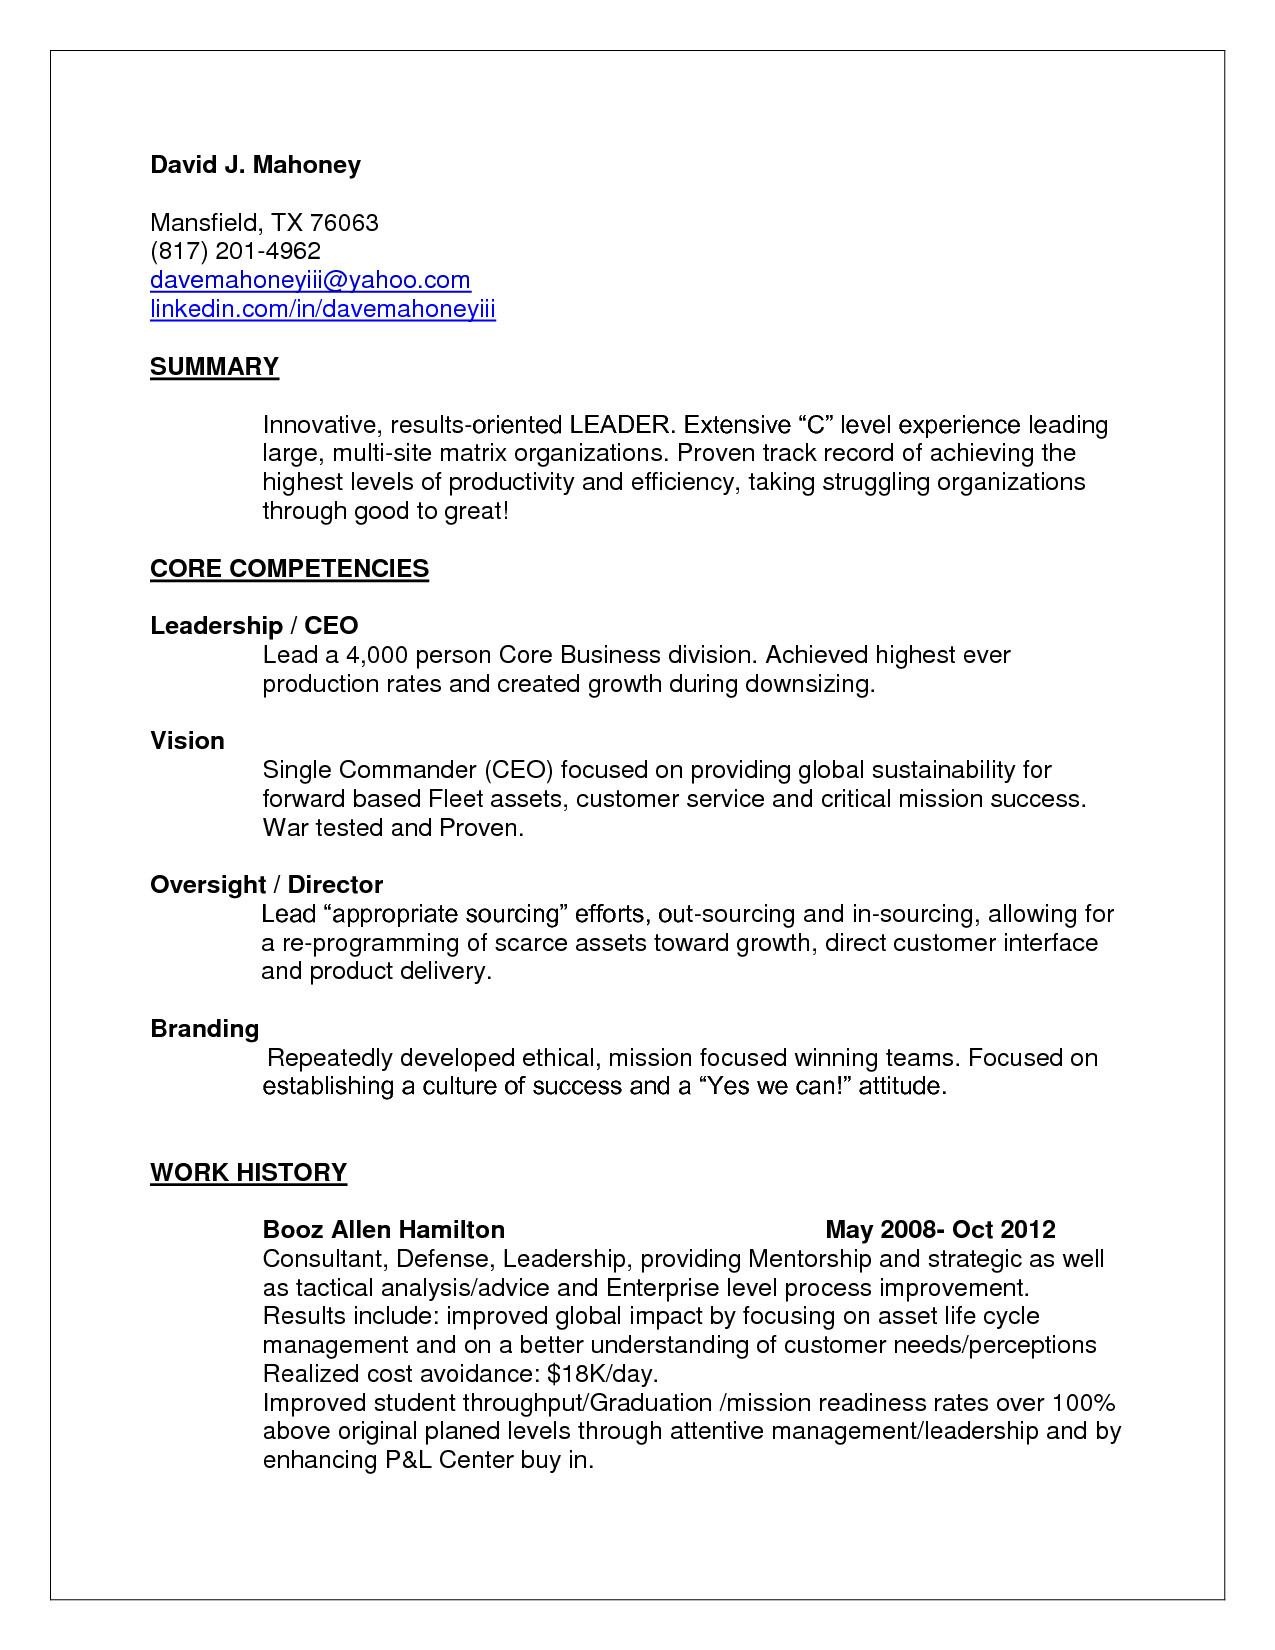 Border Patrol Resume - Resume for Customs and Border Protection Ficer Inspirational